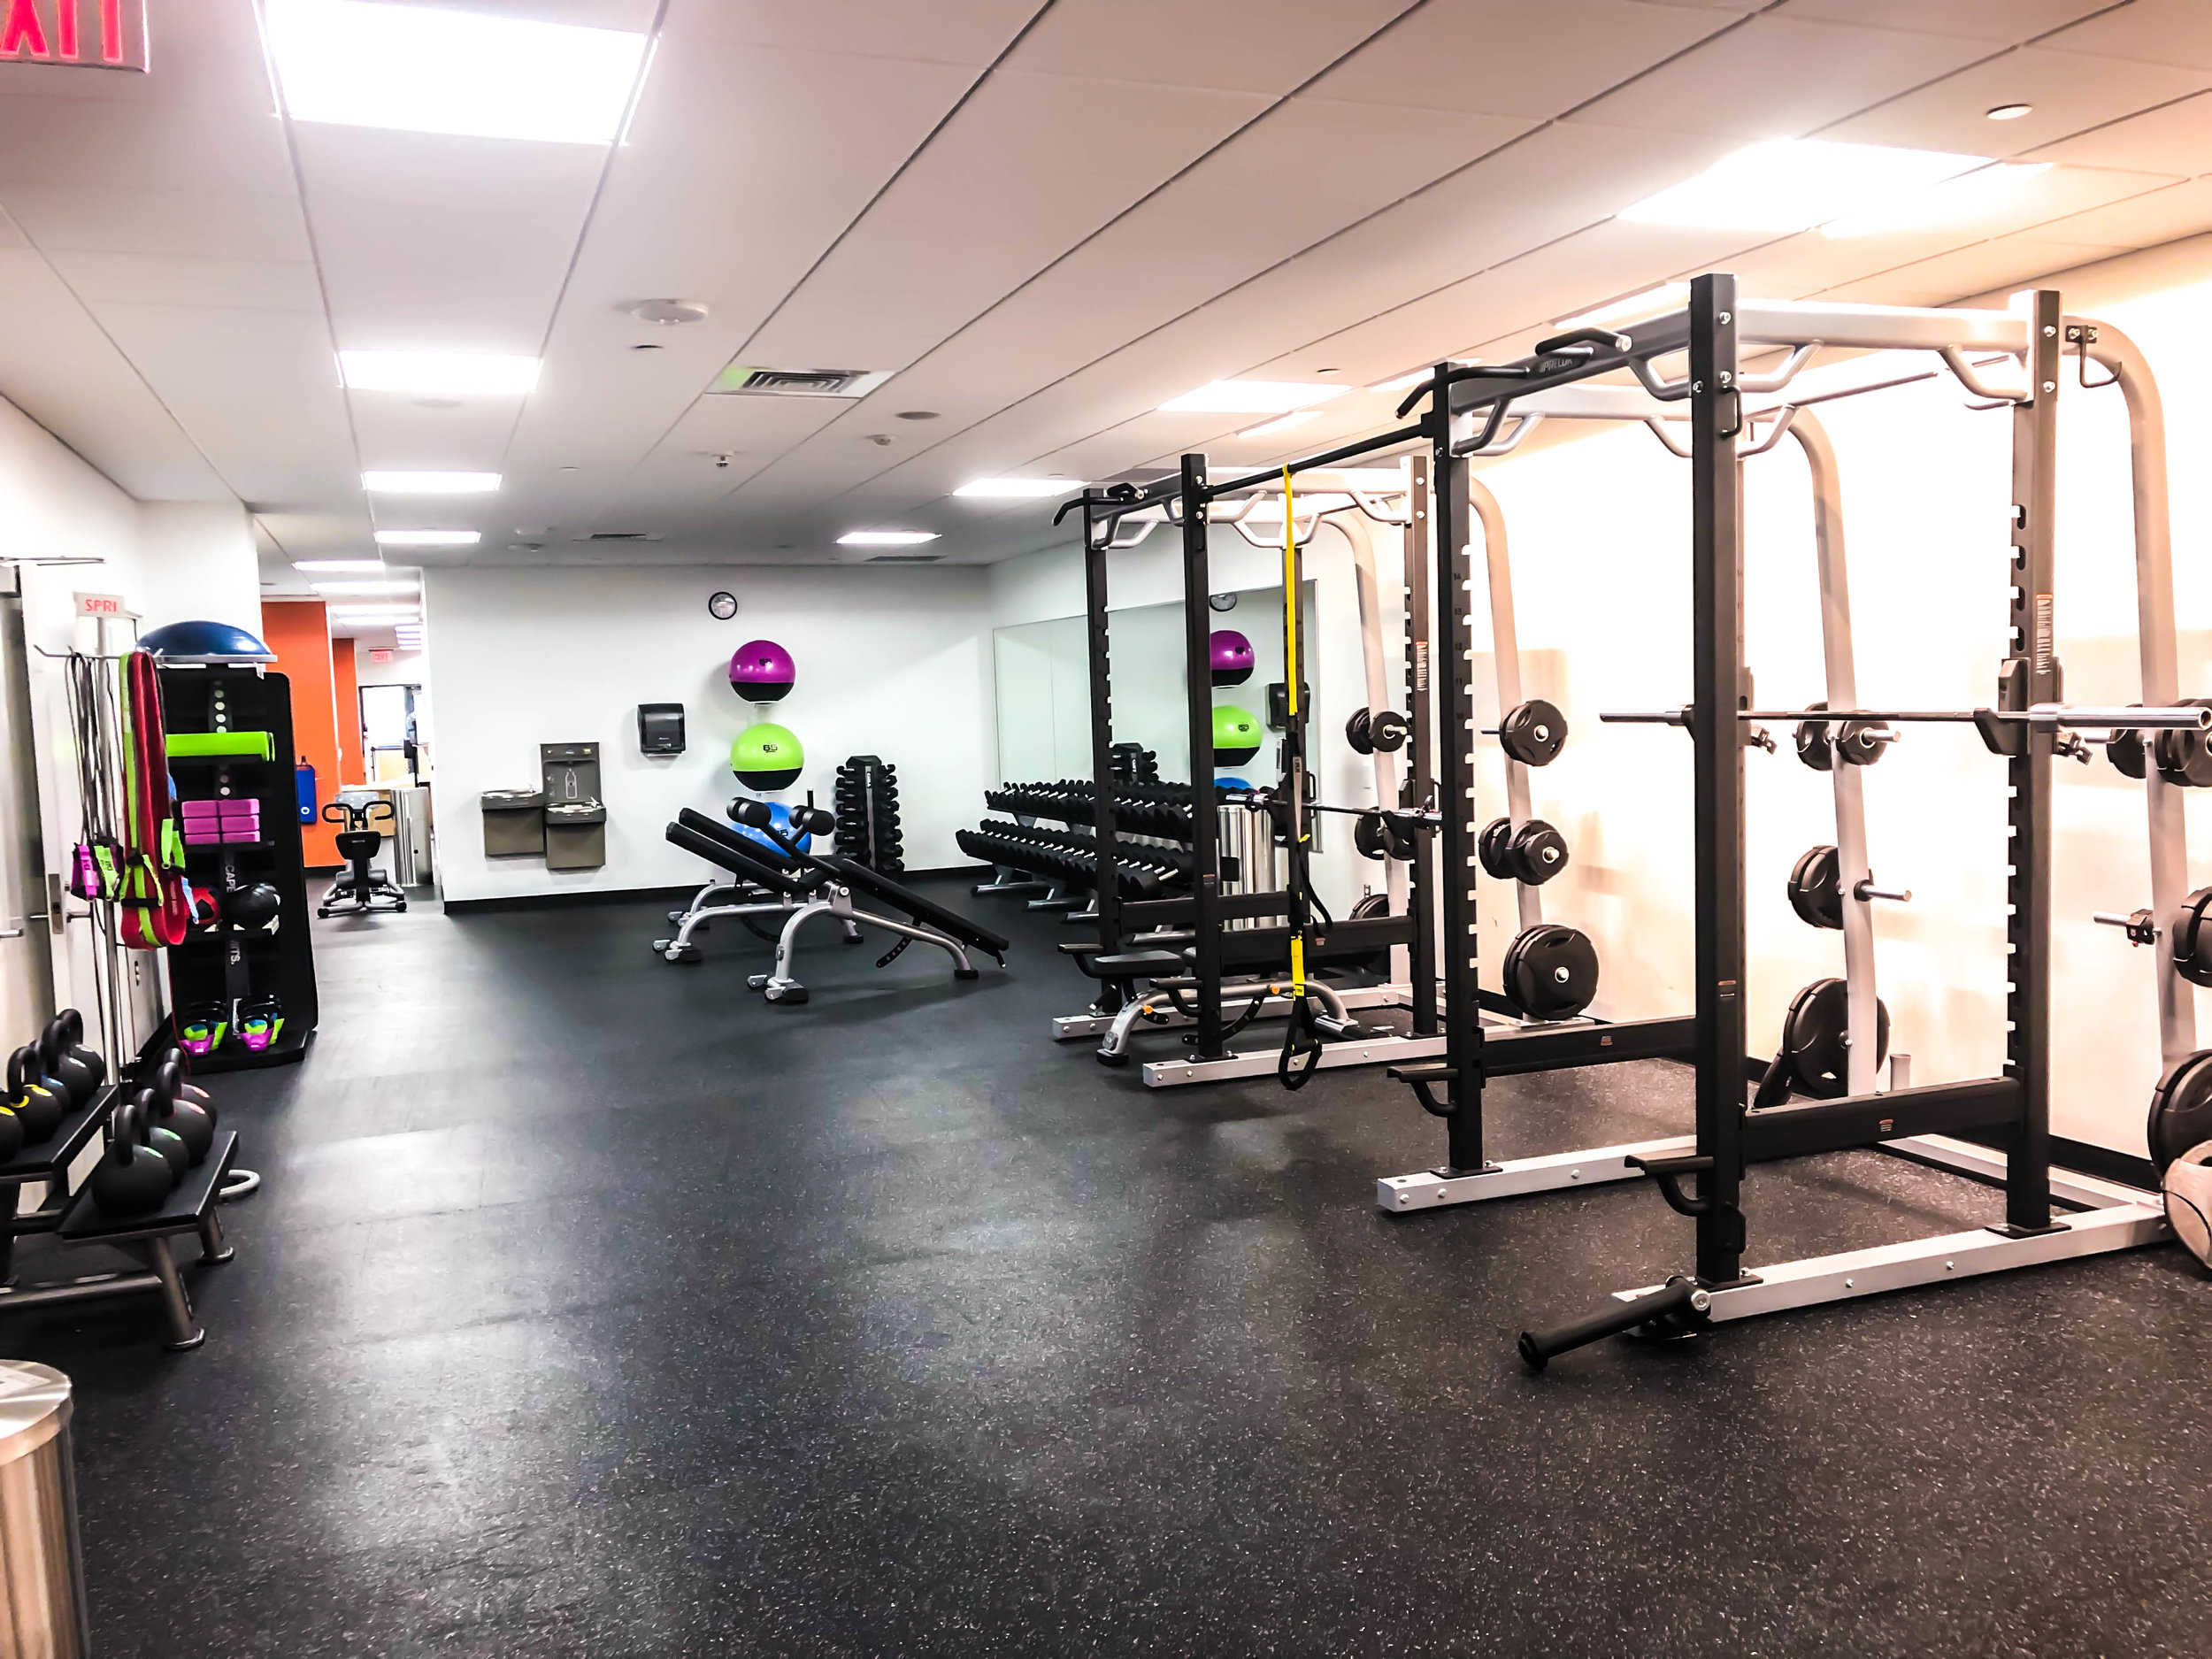 Precor power racks leading into a free weight and functional training area.